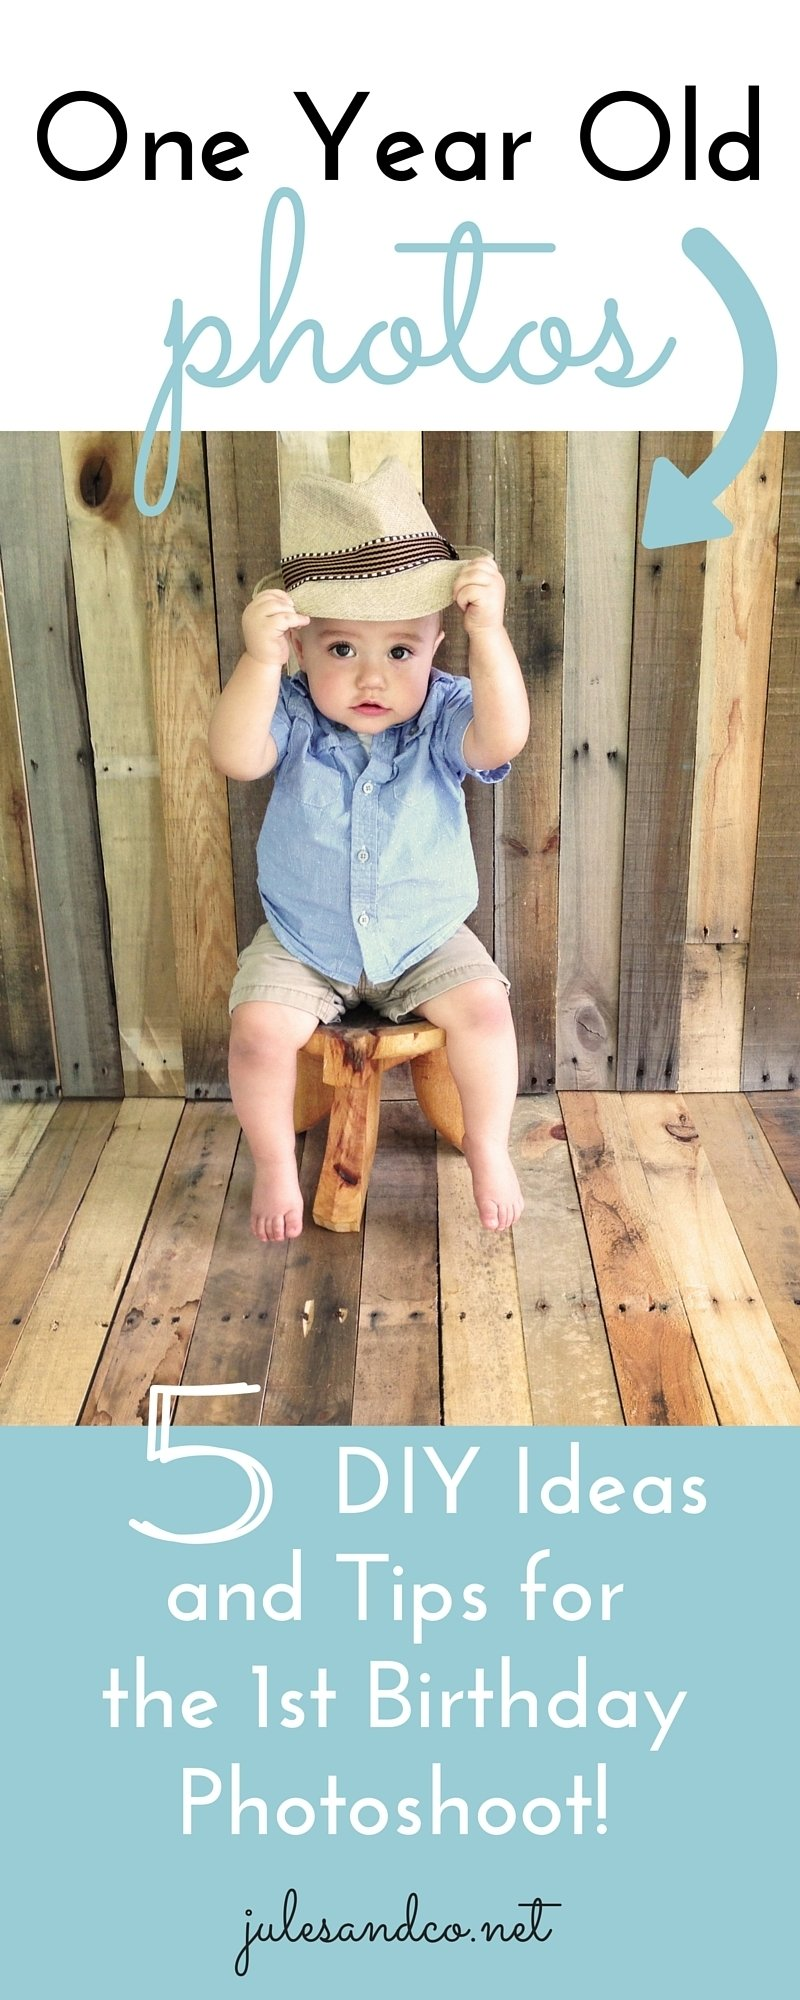 10 Ideal One Year Old Picture Ideas one year old photos 5 diy ideas and tips for the 1st birthday 3 2021